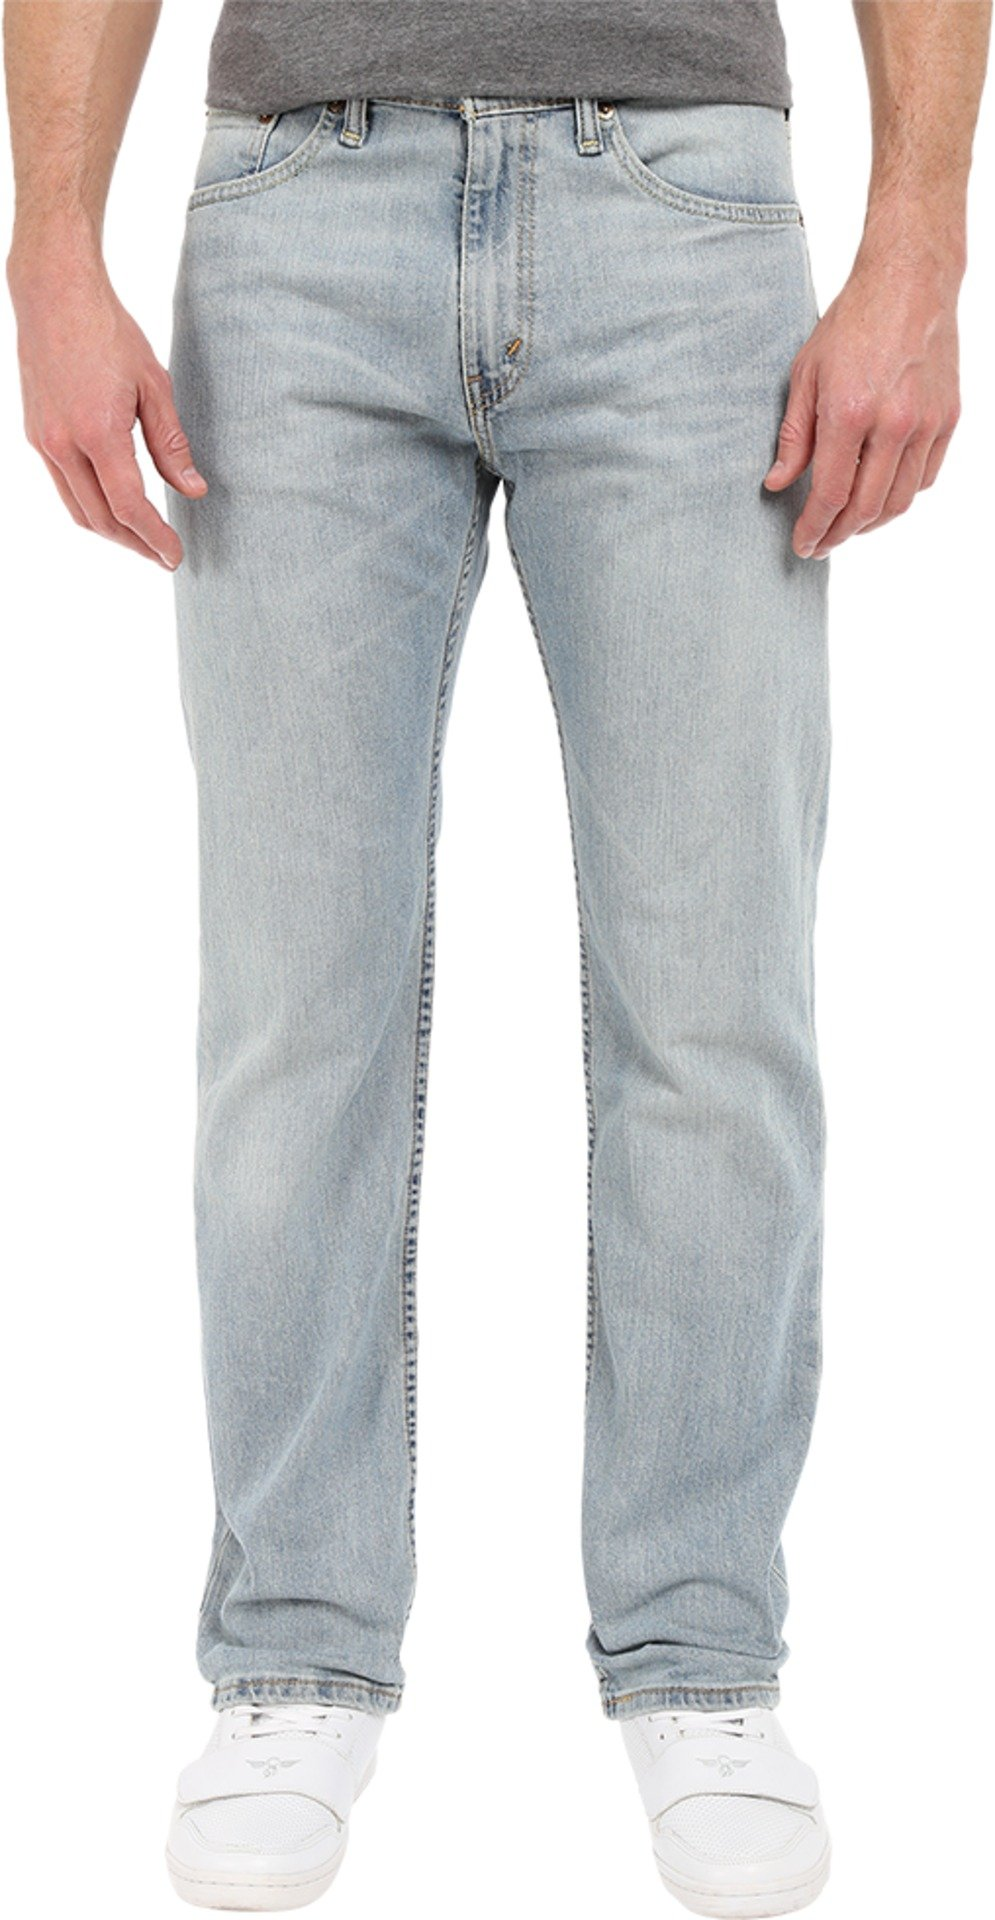 Levi's Mens Men's 505 Regular Goldentop Jeans by Levi's